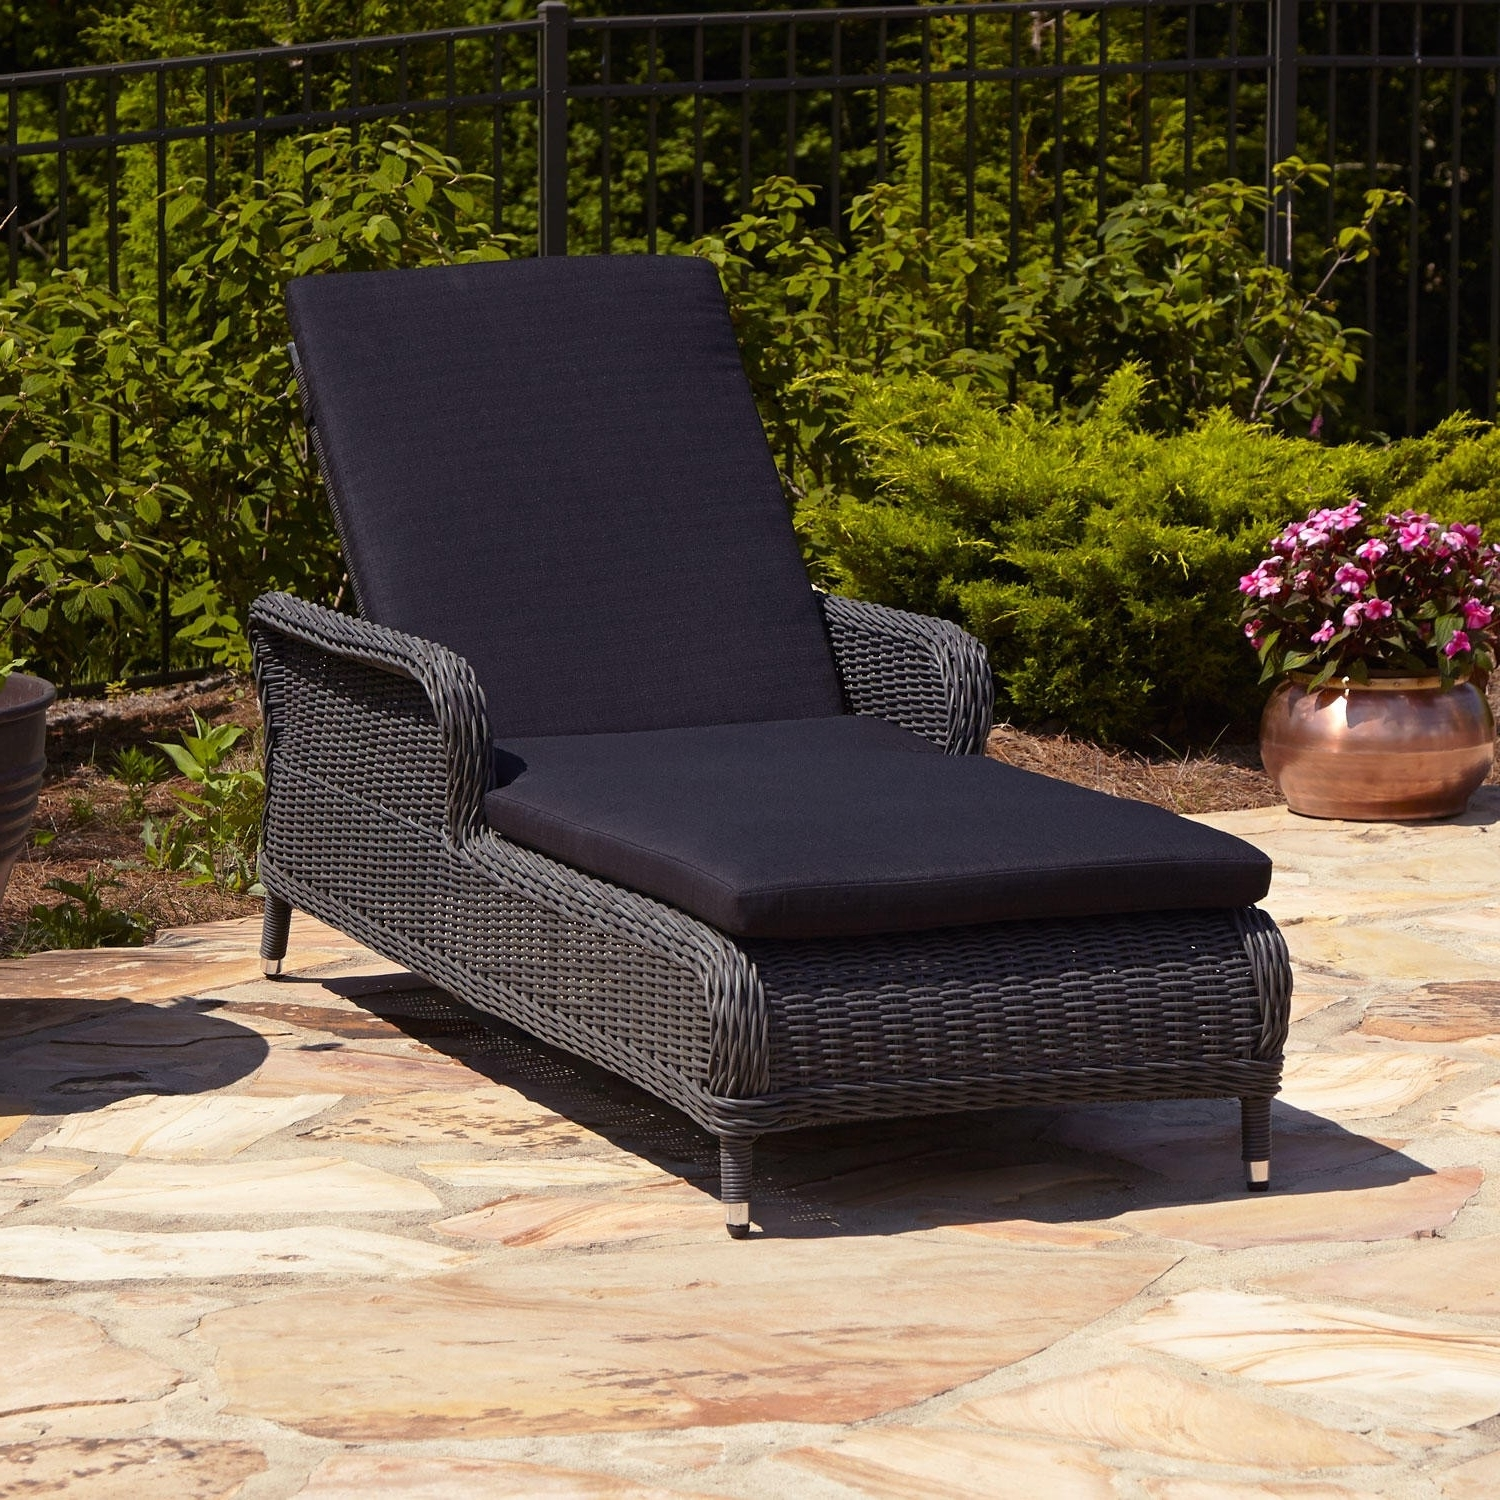 Convertible Chair : Garden Furniture Cushions Outdoor Pillows And Within Most Up To Date Cushion Pads For Outdoor Chaise Lounge Chairs (View 3 of 15)